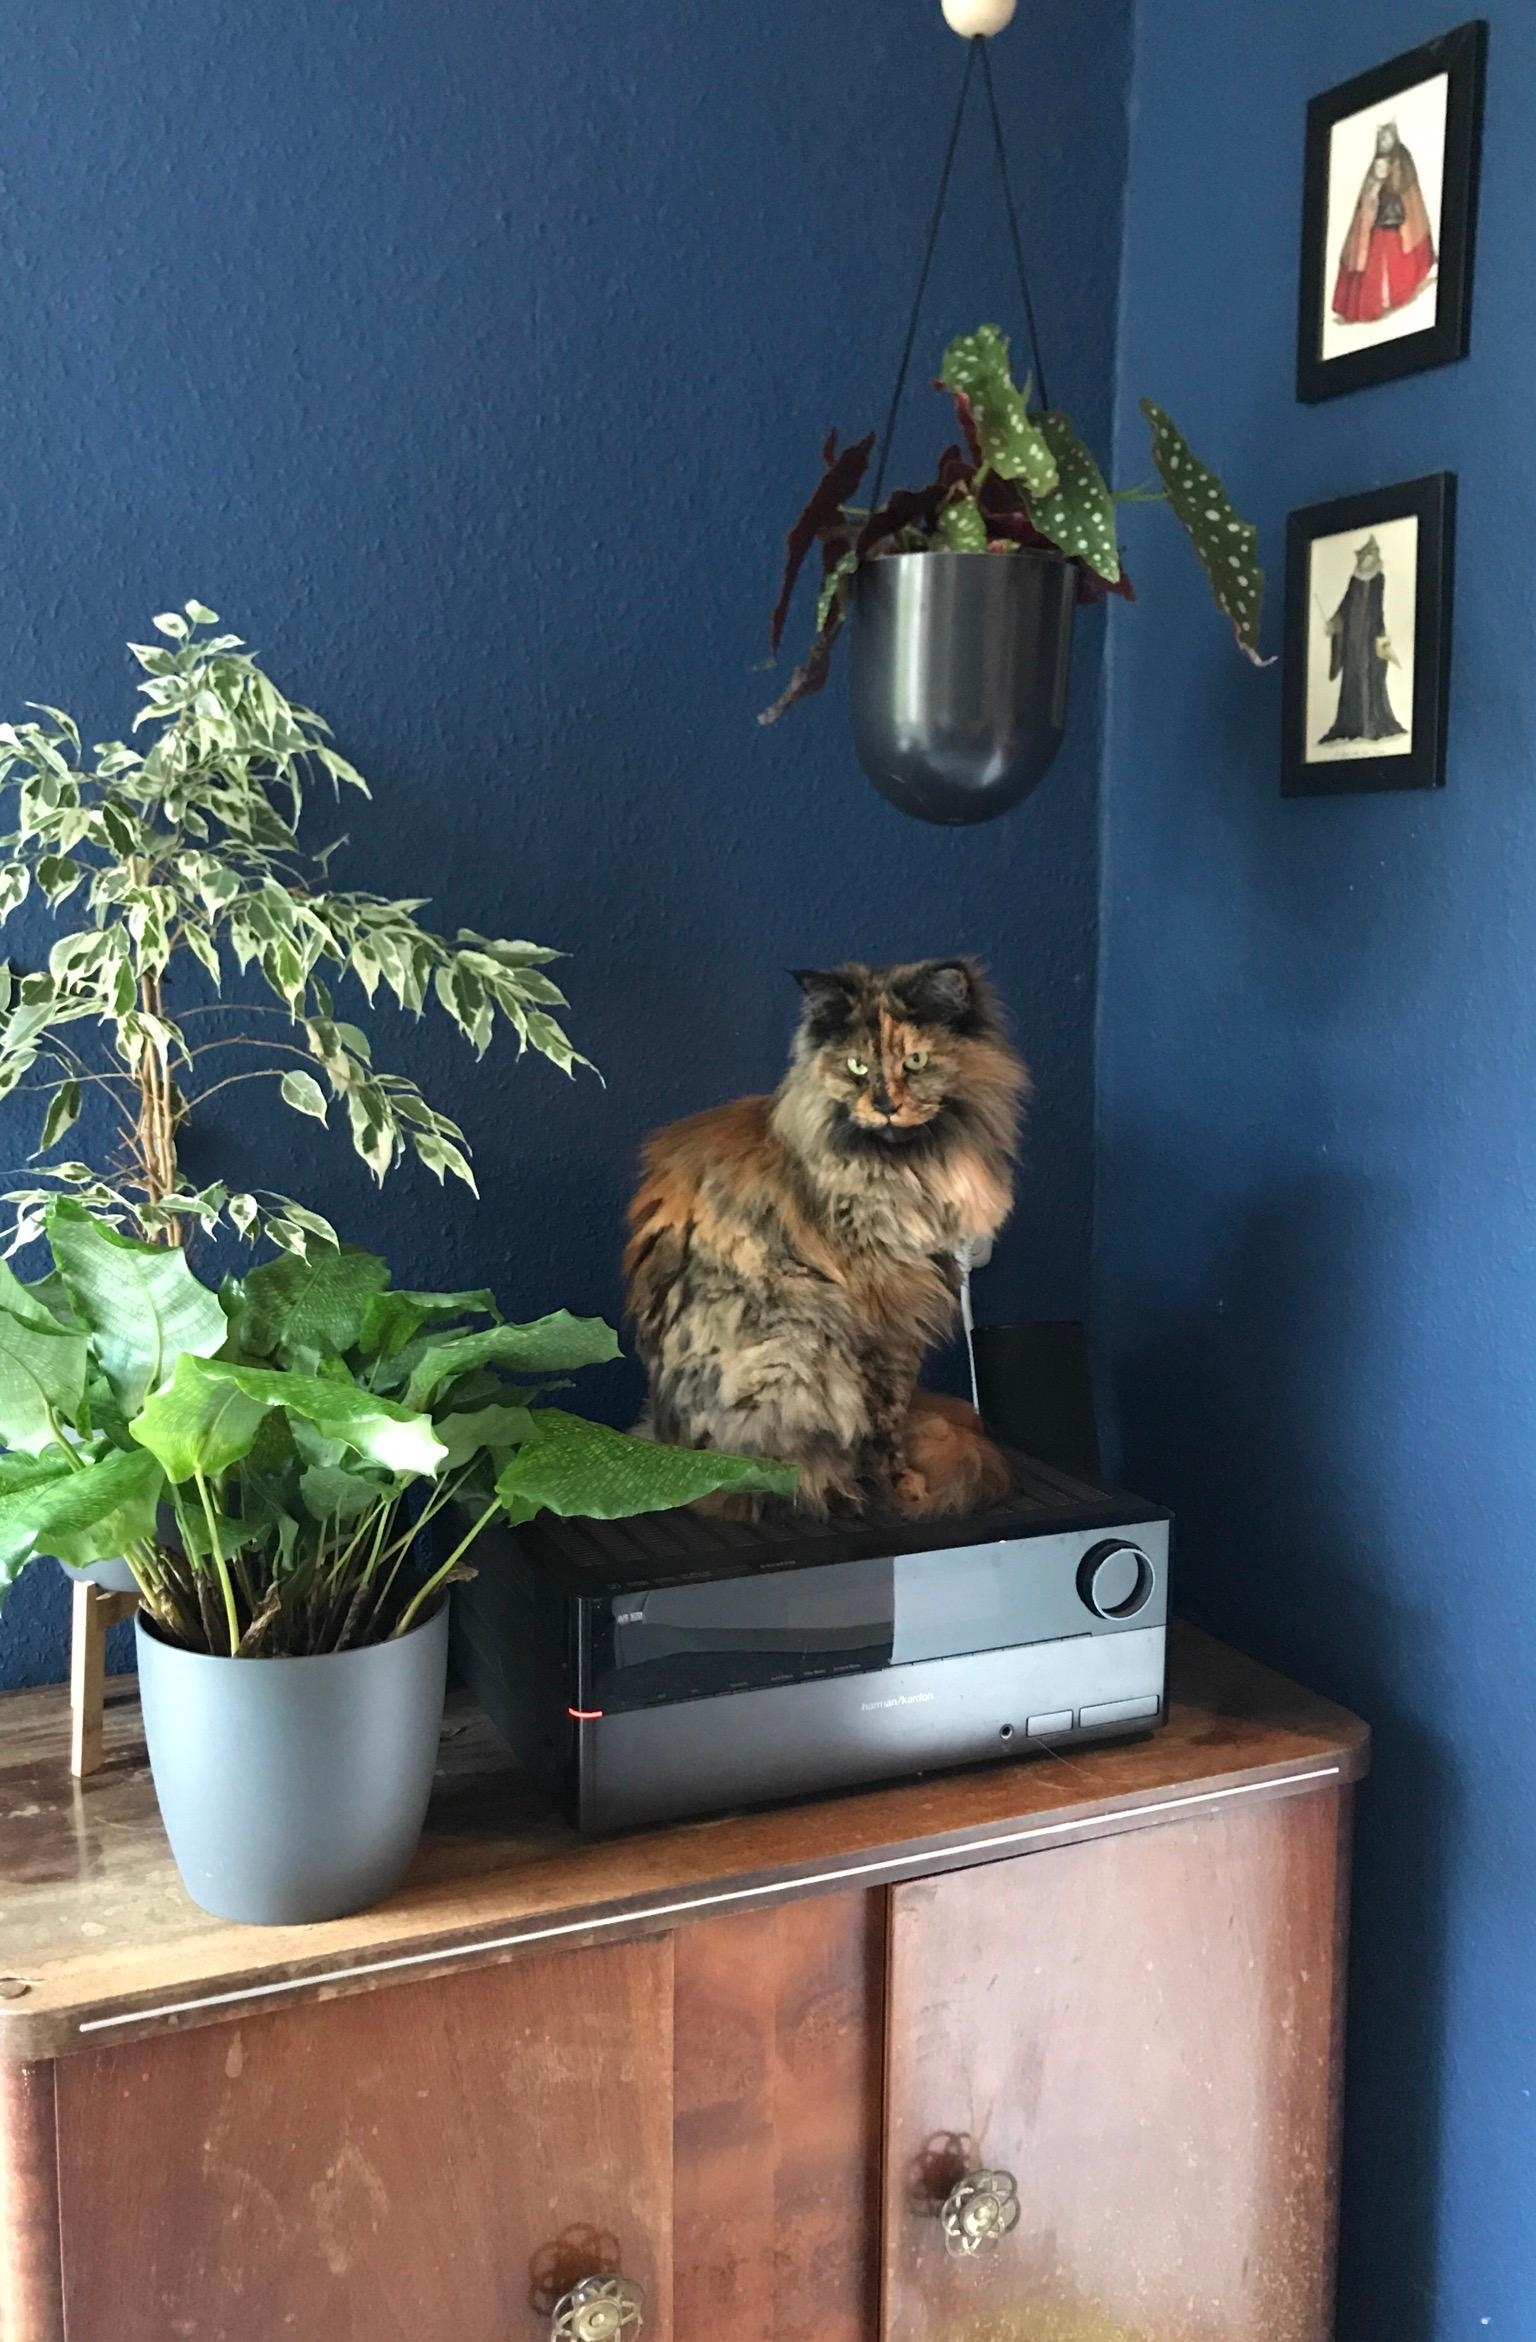 Home is where your cat is. And your plants. 🐱💚 #cats #küche #vintage #plantgang #urbanjungle